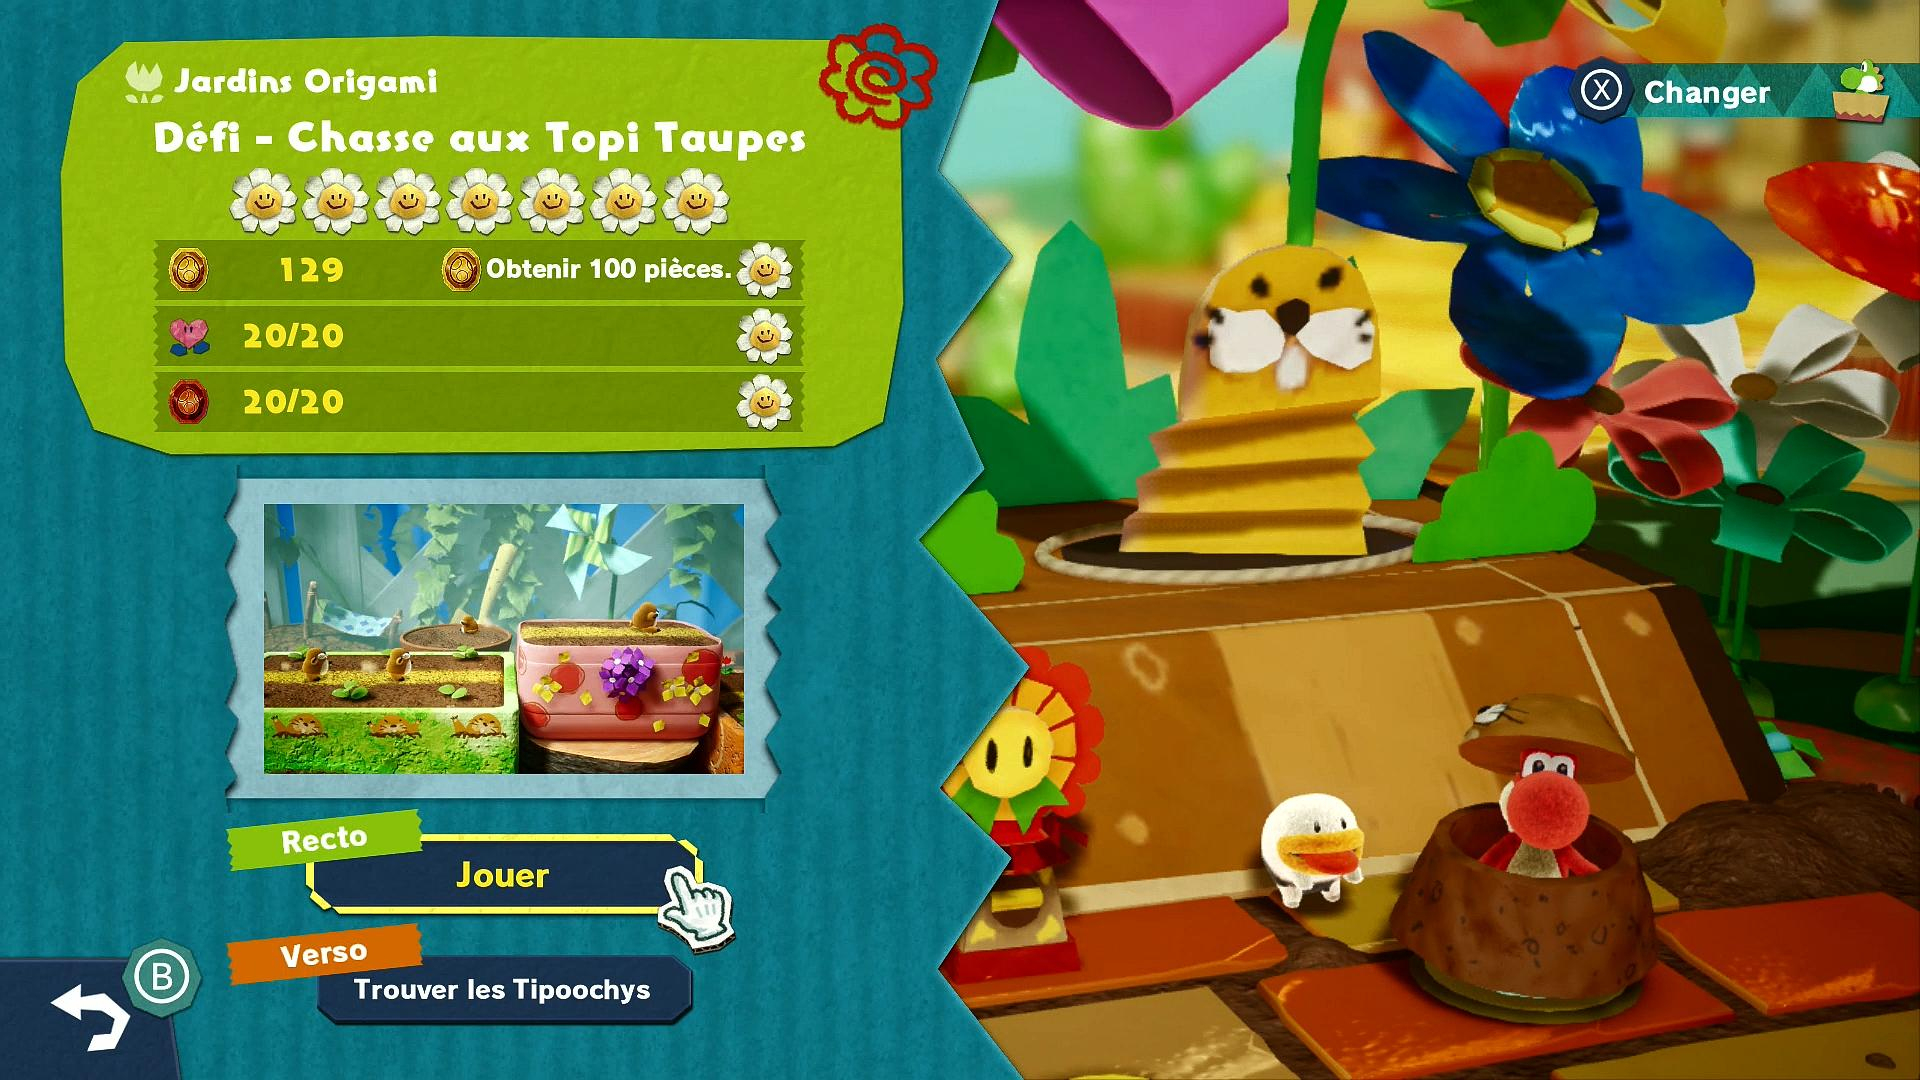 Défi - Chasse Aux Taupi-Taupes - Soluce Yoshi's Crafted pour Jeu Chasse Taupe